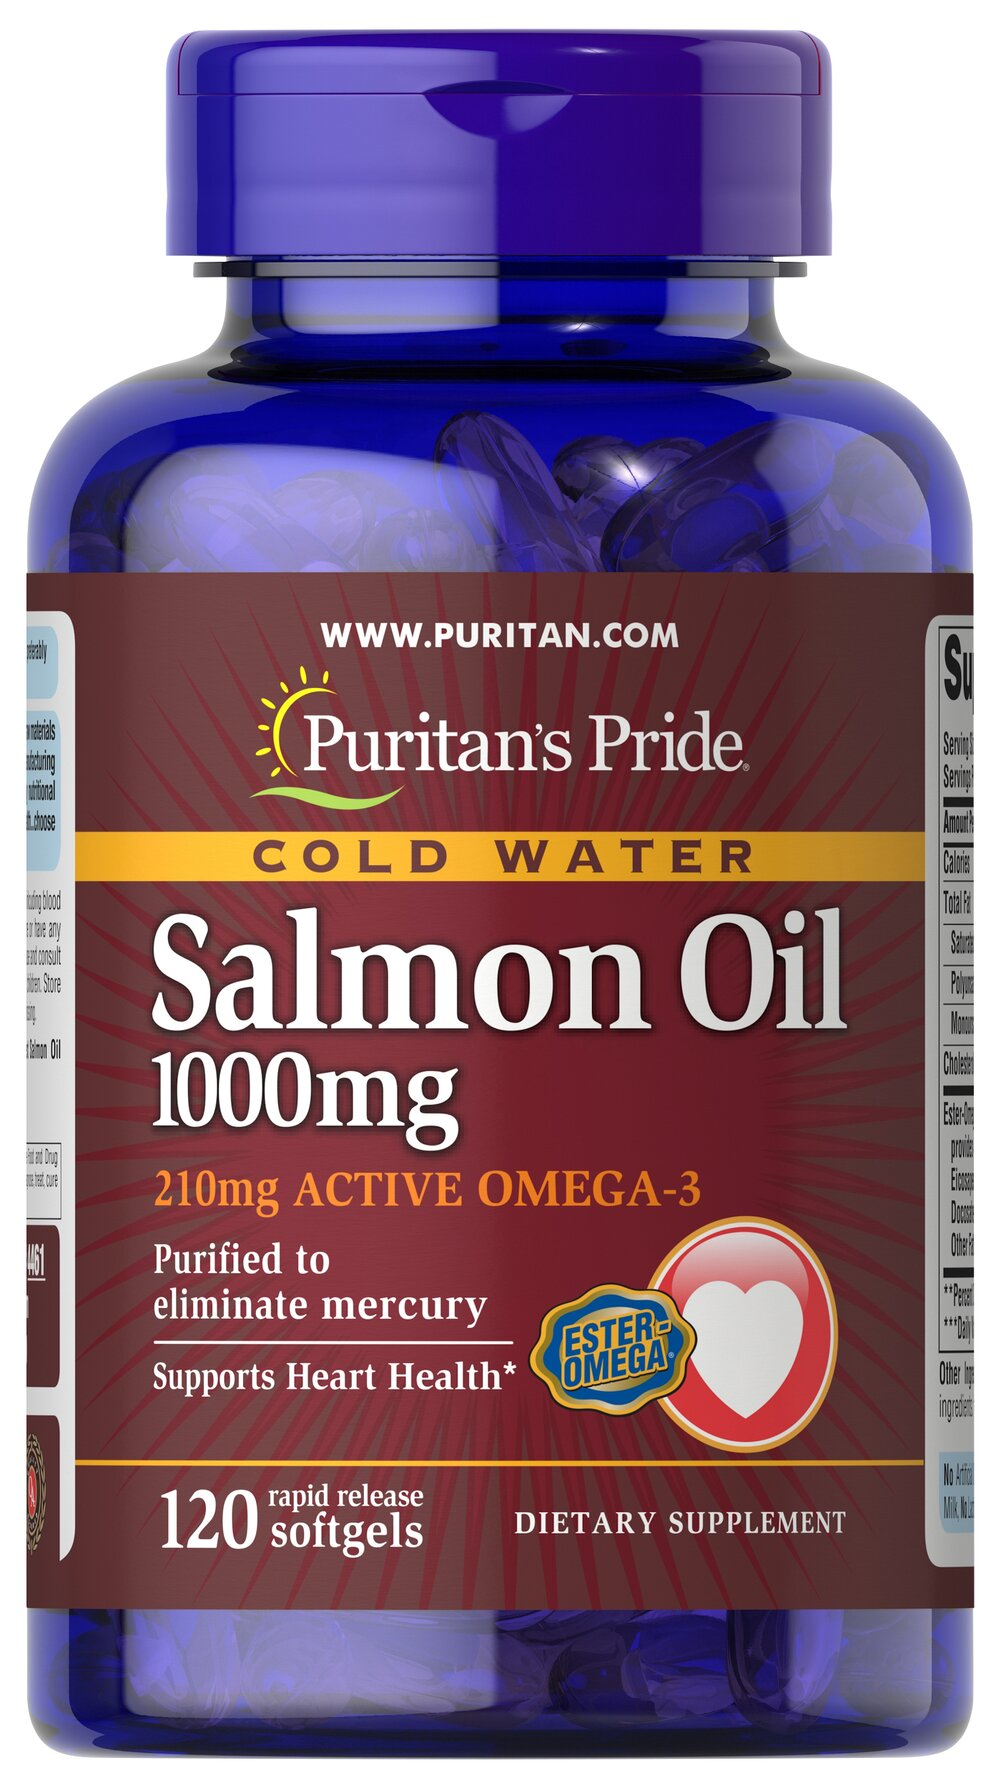 Omega-3 Salmon Oil 1000 mg <p><strong>Purified to Eliminate Mercury</strong></p><p>Puritan's Pride Salmon Oil contains the finest Salmon Oil available. Take two softgels two times a day to gain the essential fatty acids your body needs for good health.** Salmon contains a high concentration of Omega-3 fatty acids that have been shown to help promote metabolic, circulatory and heart health.**</p> 120 Softgels 1000 mg $20.59